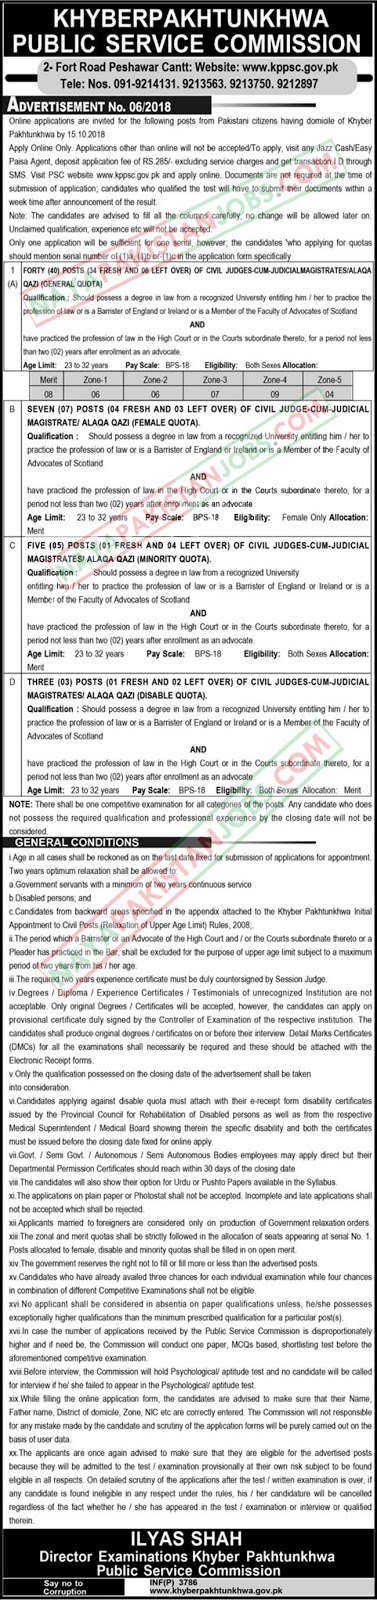 .Latest Vacancies Announced in Khyber Pakhtunkhwa Public Service Commission KPPSC 30 September 2018 - Naya Pak Jobs